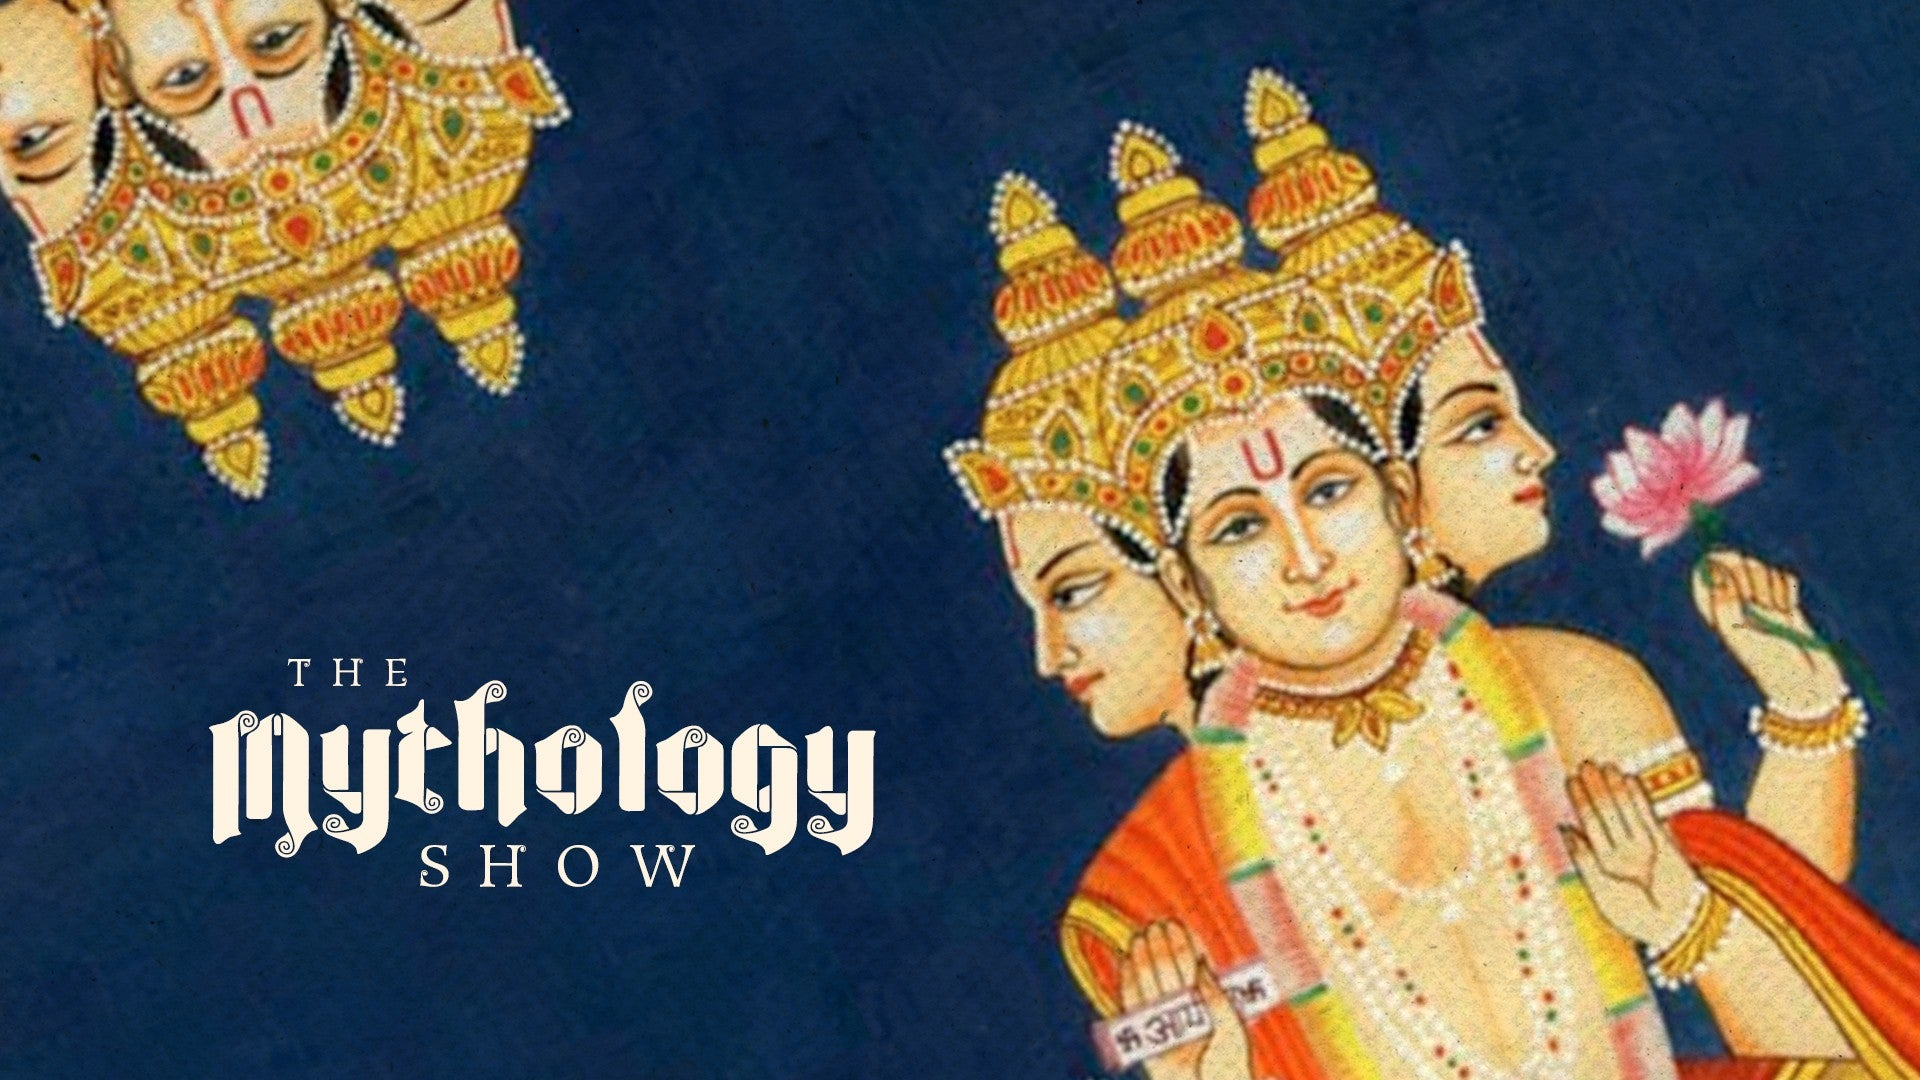 The Mythology Show Artwork